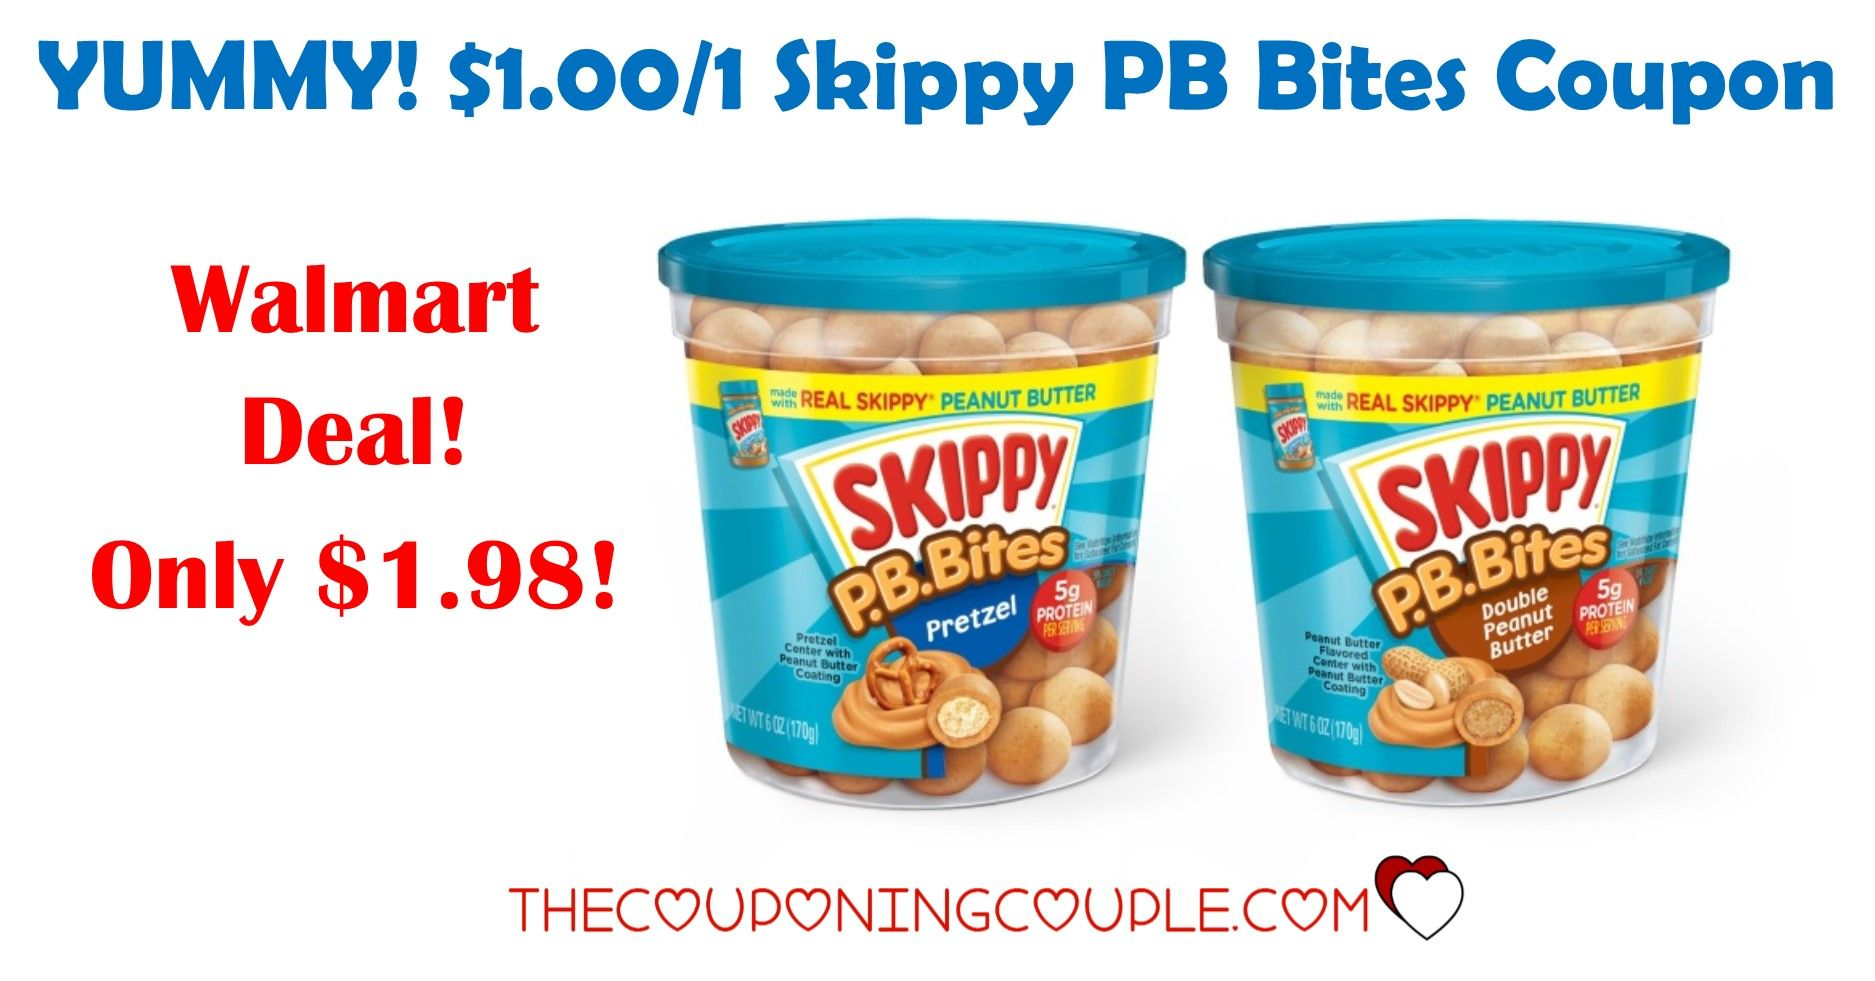 YUM! Skippy PB Bites! Only 1.98 with Walmart Deal